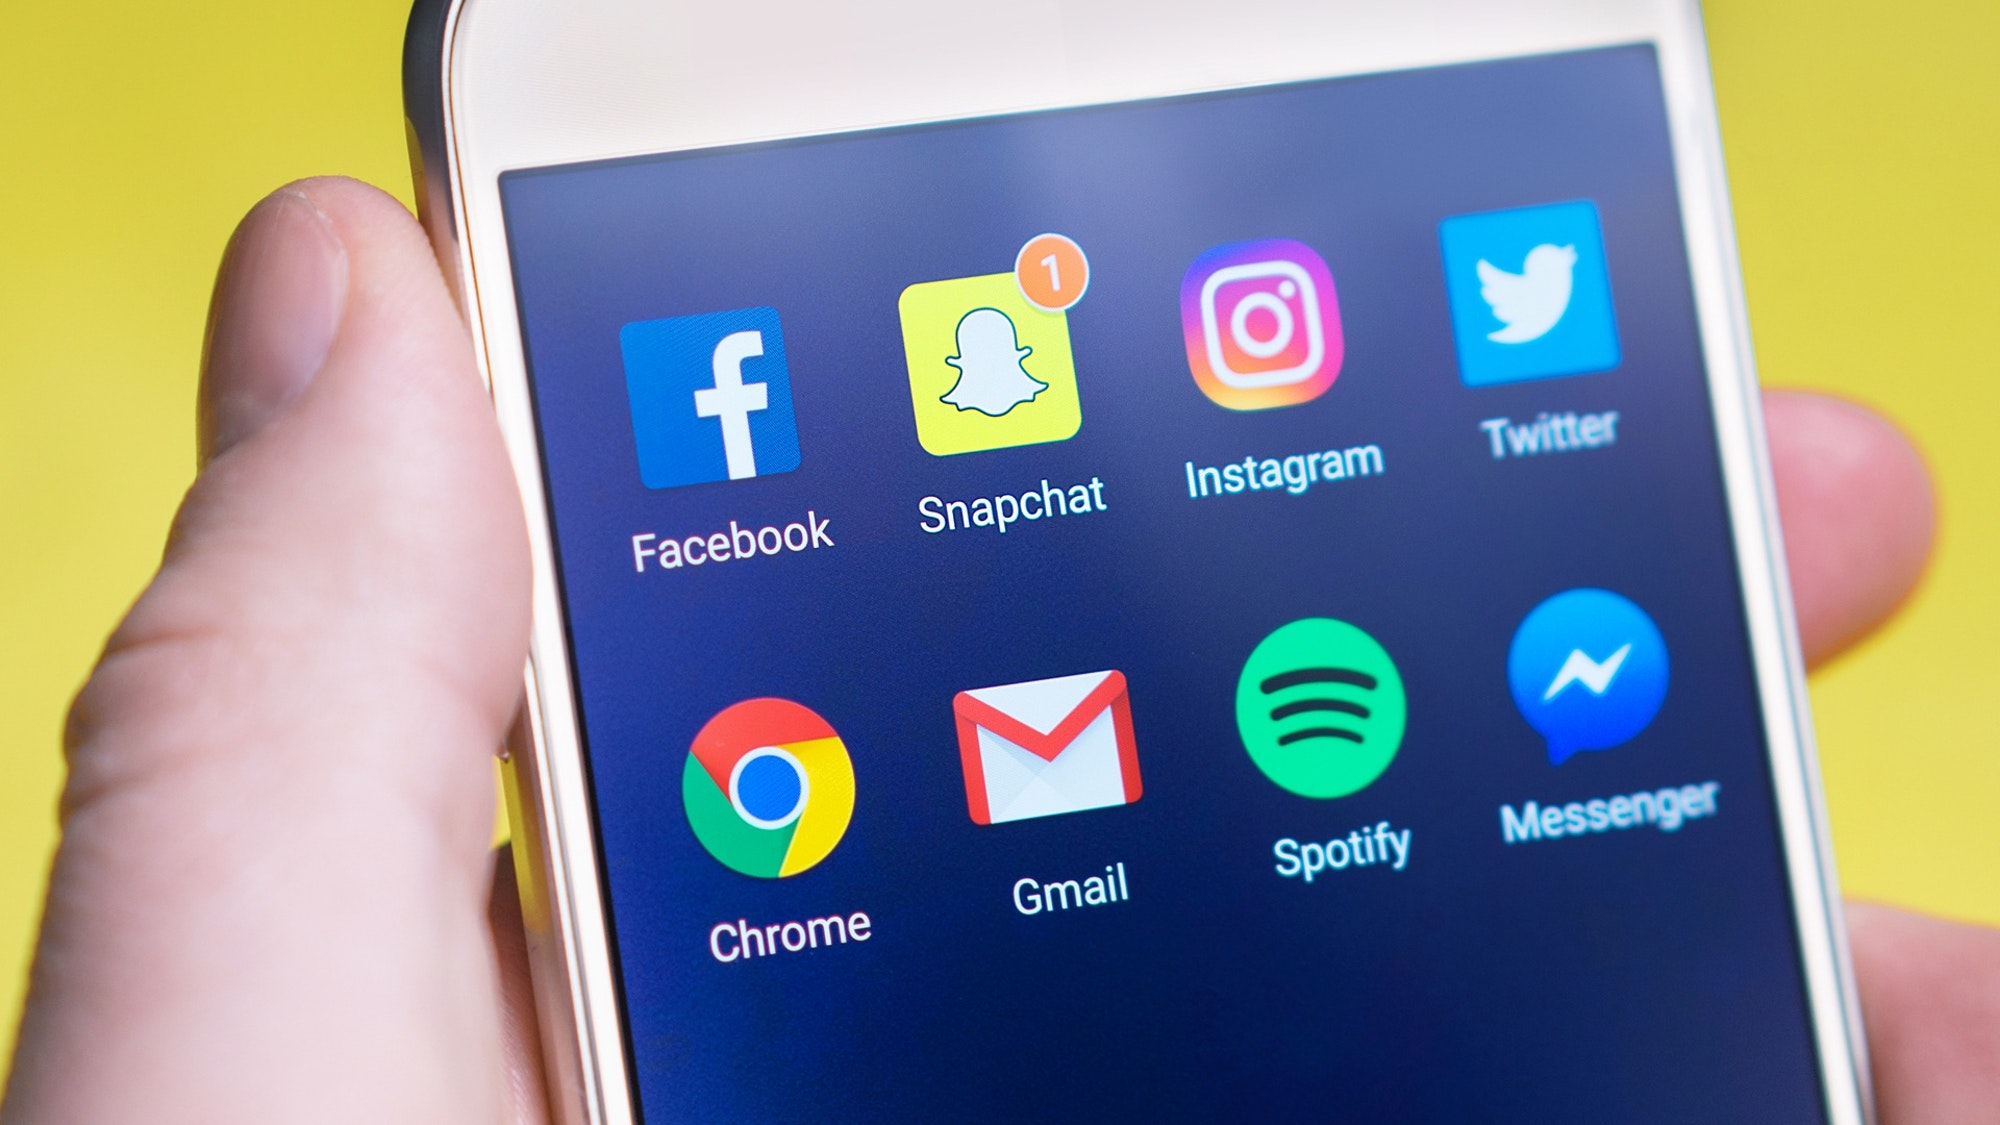 Why Does Your Business Need Social Media?